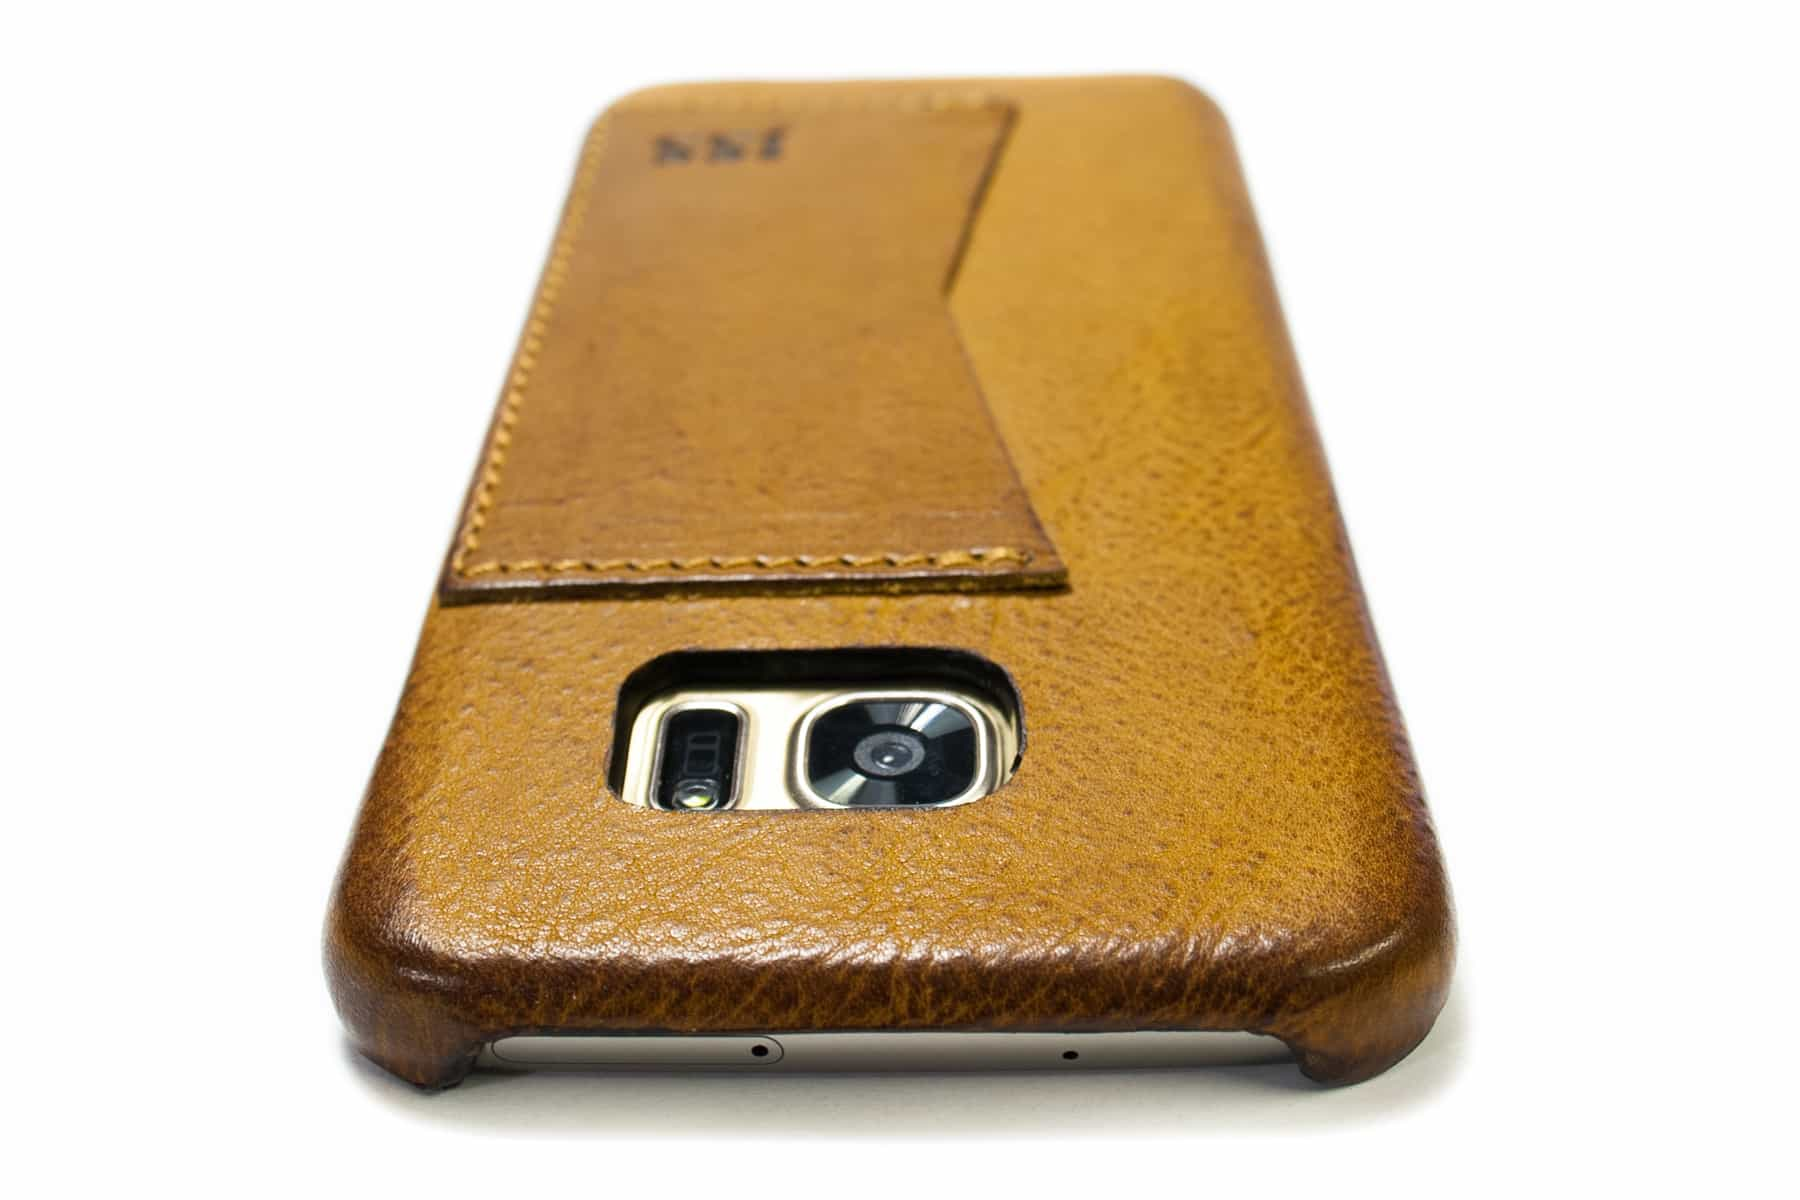 Samsung Galaxy S7 EDGE Leather Case, Camel, Camera Detail